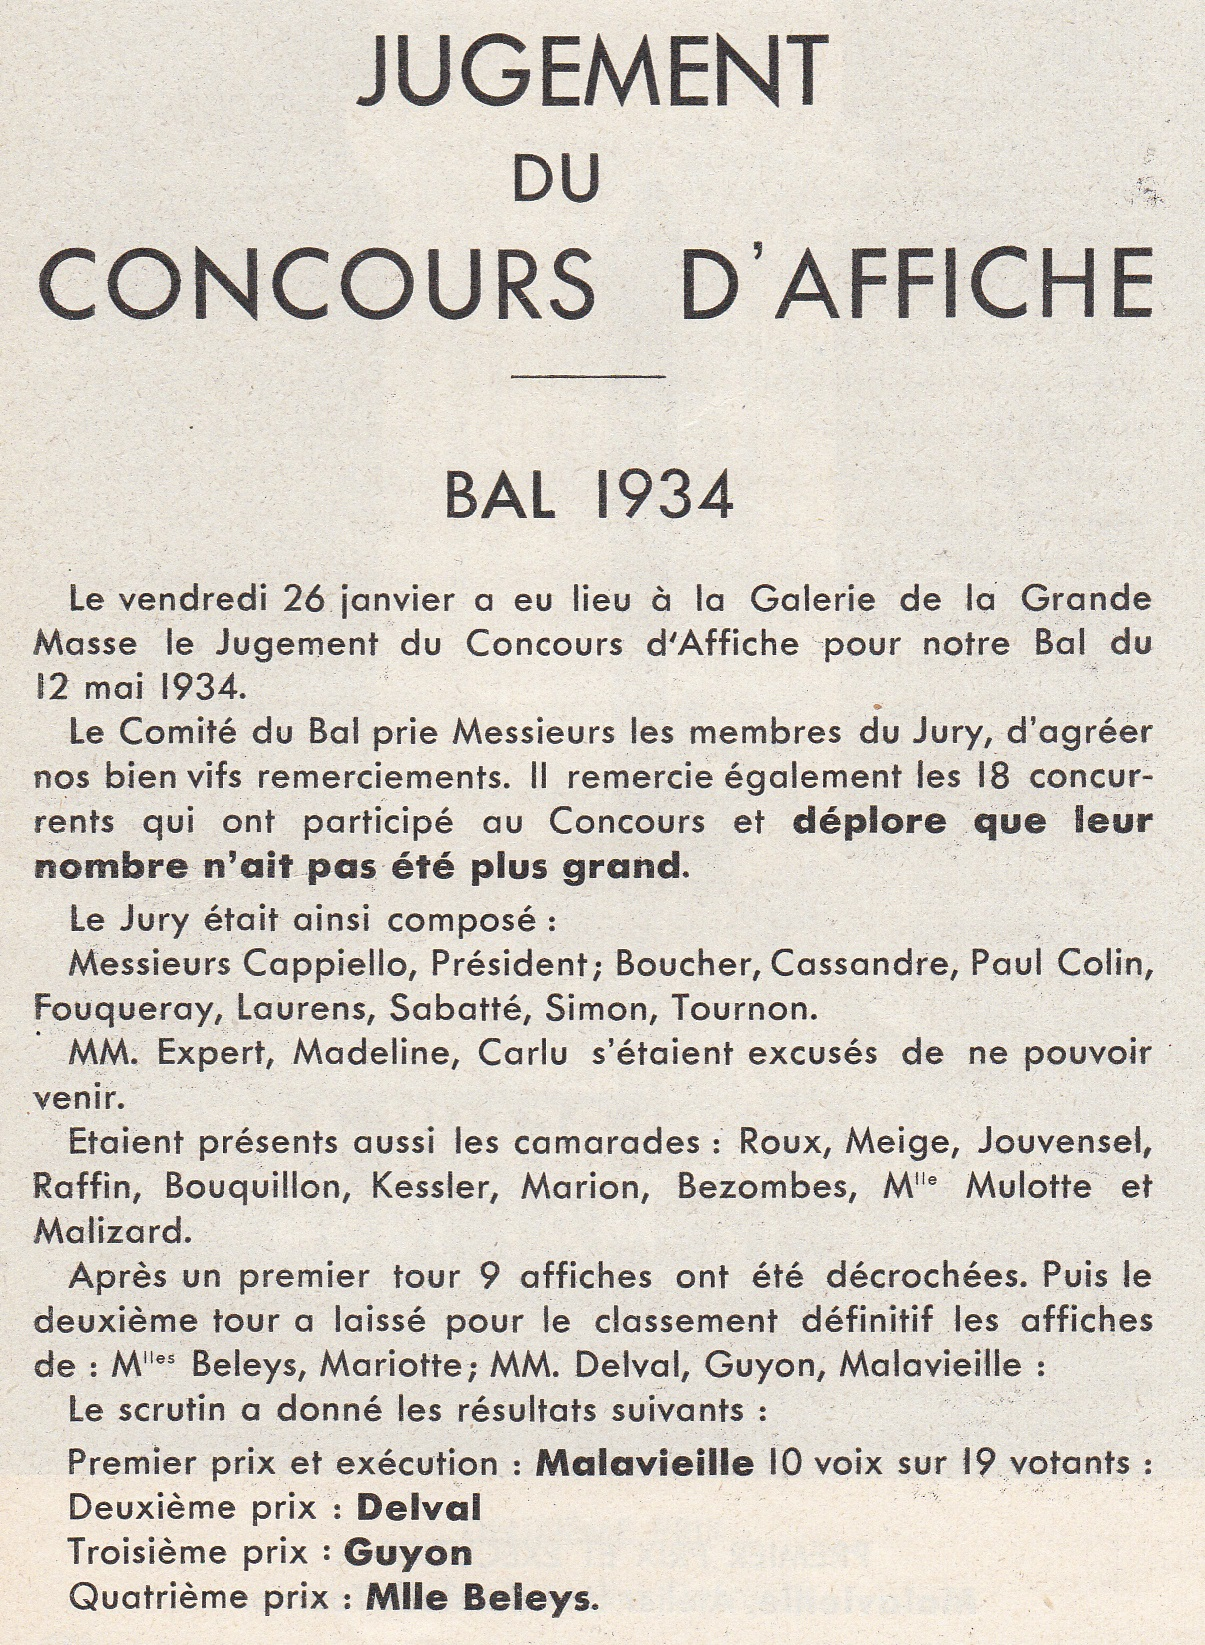 193402_Bulletin-GMBA_Jugement-concours-affiches.jpg